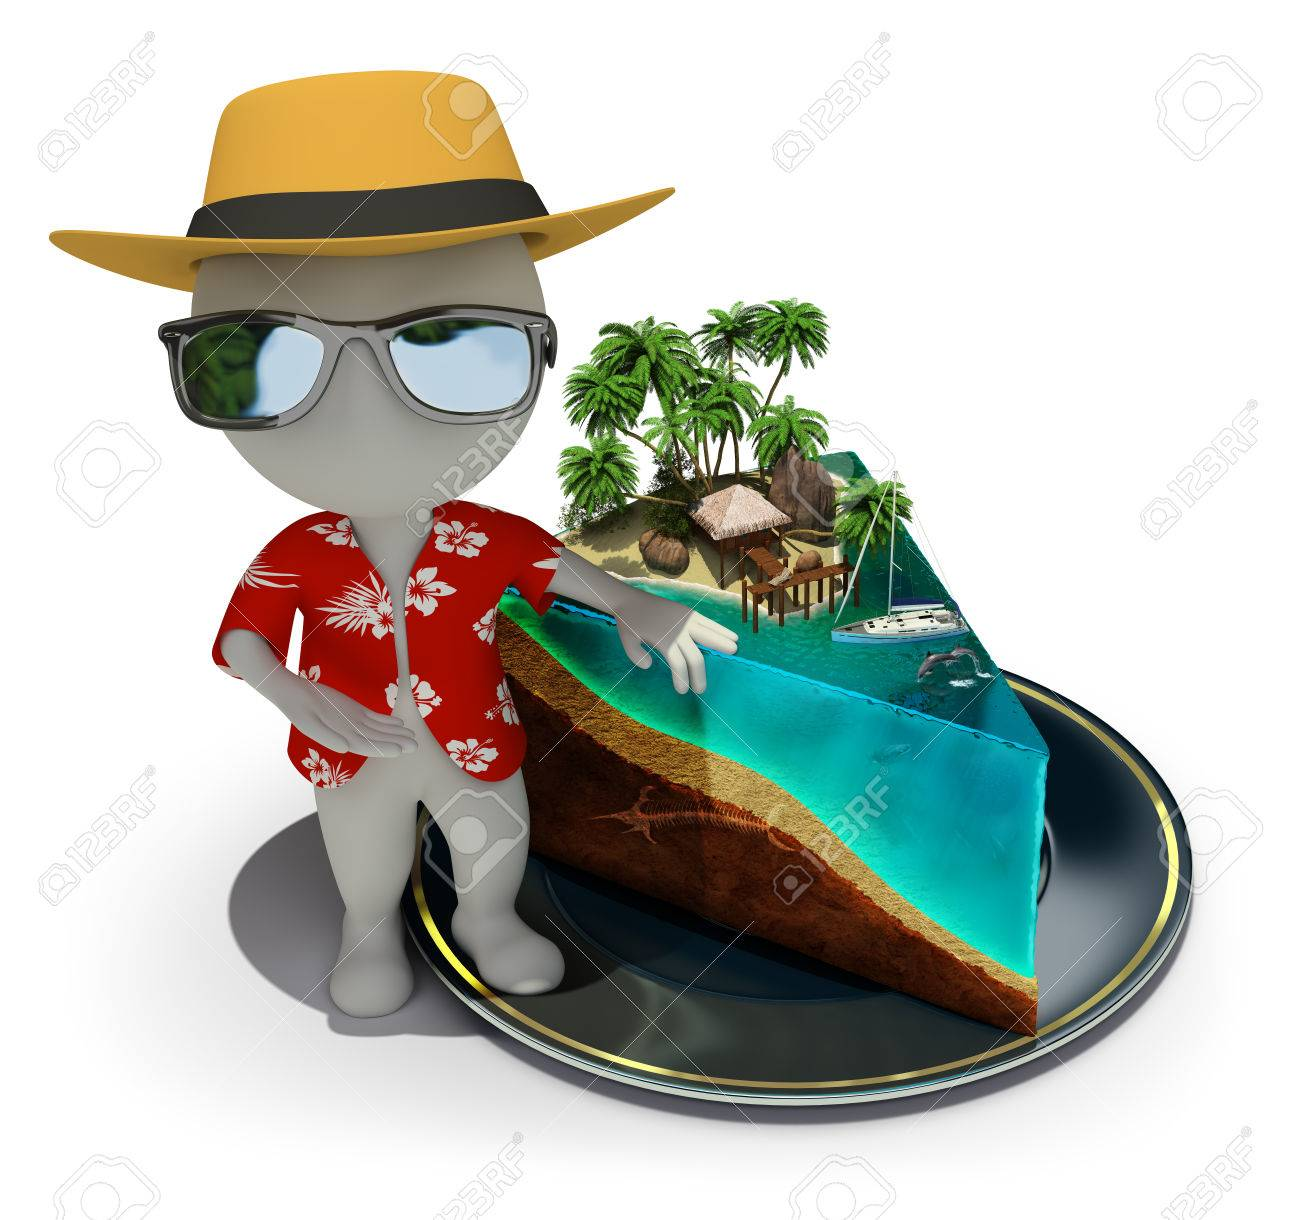 3d small person - tourist near a slice of cake in the form of paradise 3d image White background - 26583781